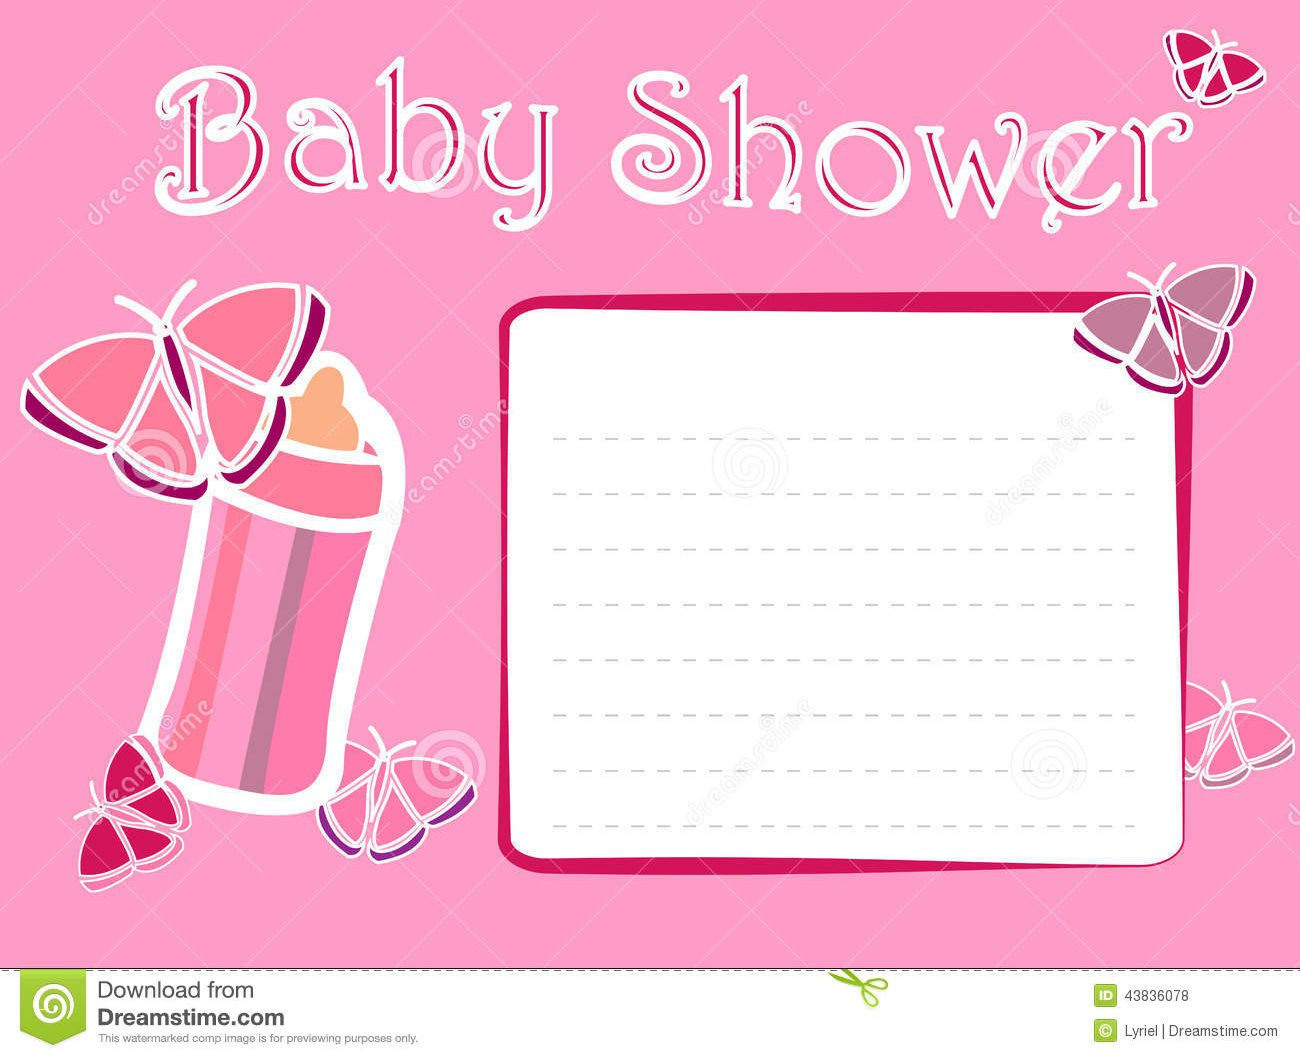 Full Size of Baby Shower:63+ Delightful Cheap Baby Shower Invitations Image Inspirations Ideas Para Baby Shower Baby Shower Para Niño Baby Shower Video Baby Shower Party Themes Baby Shower Wording Save The Date Baby Shower